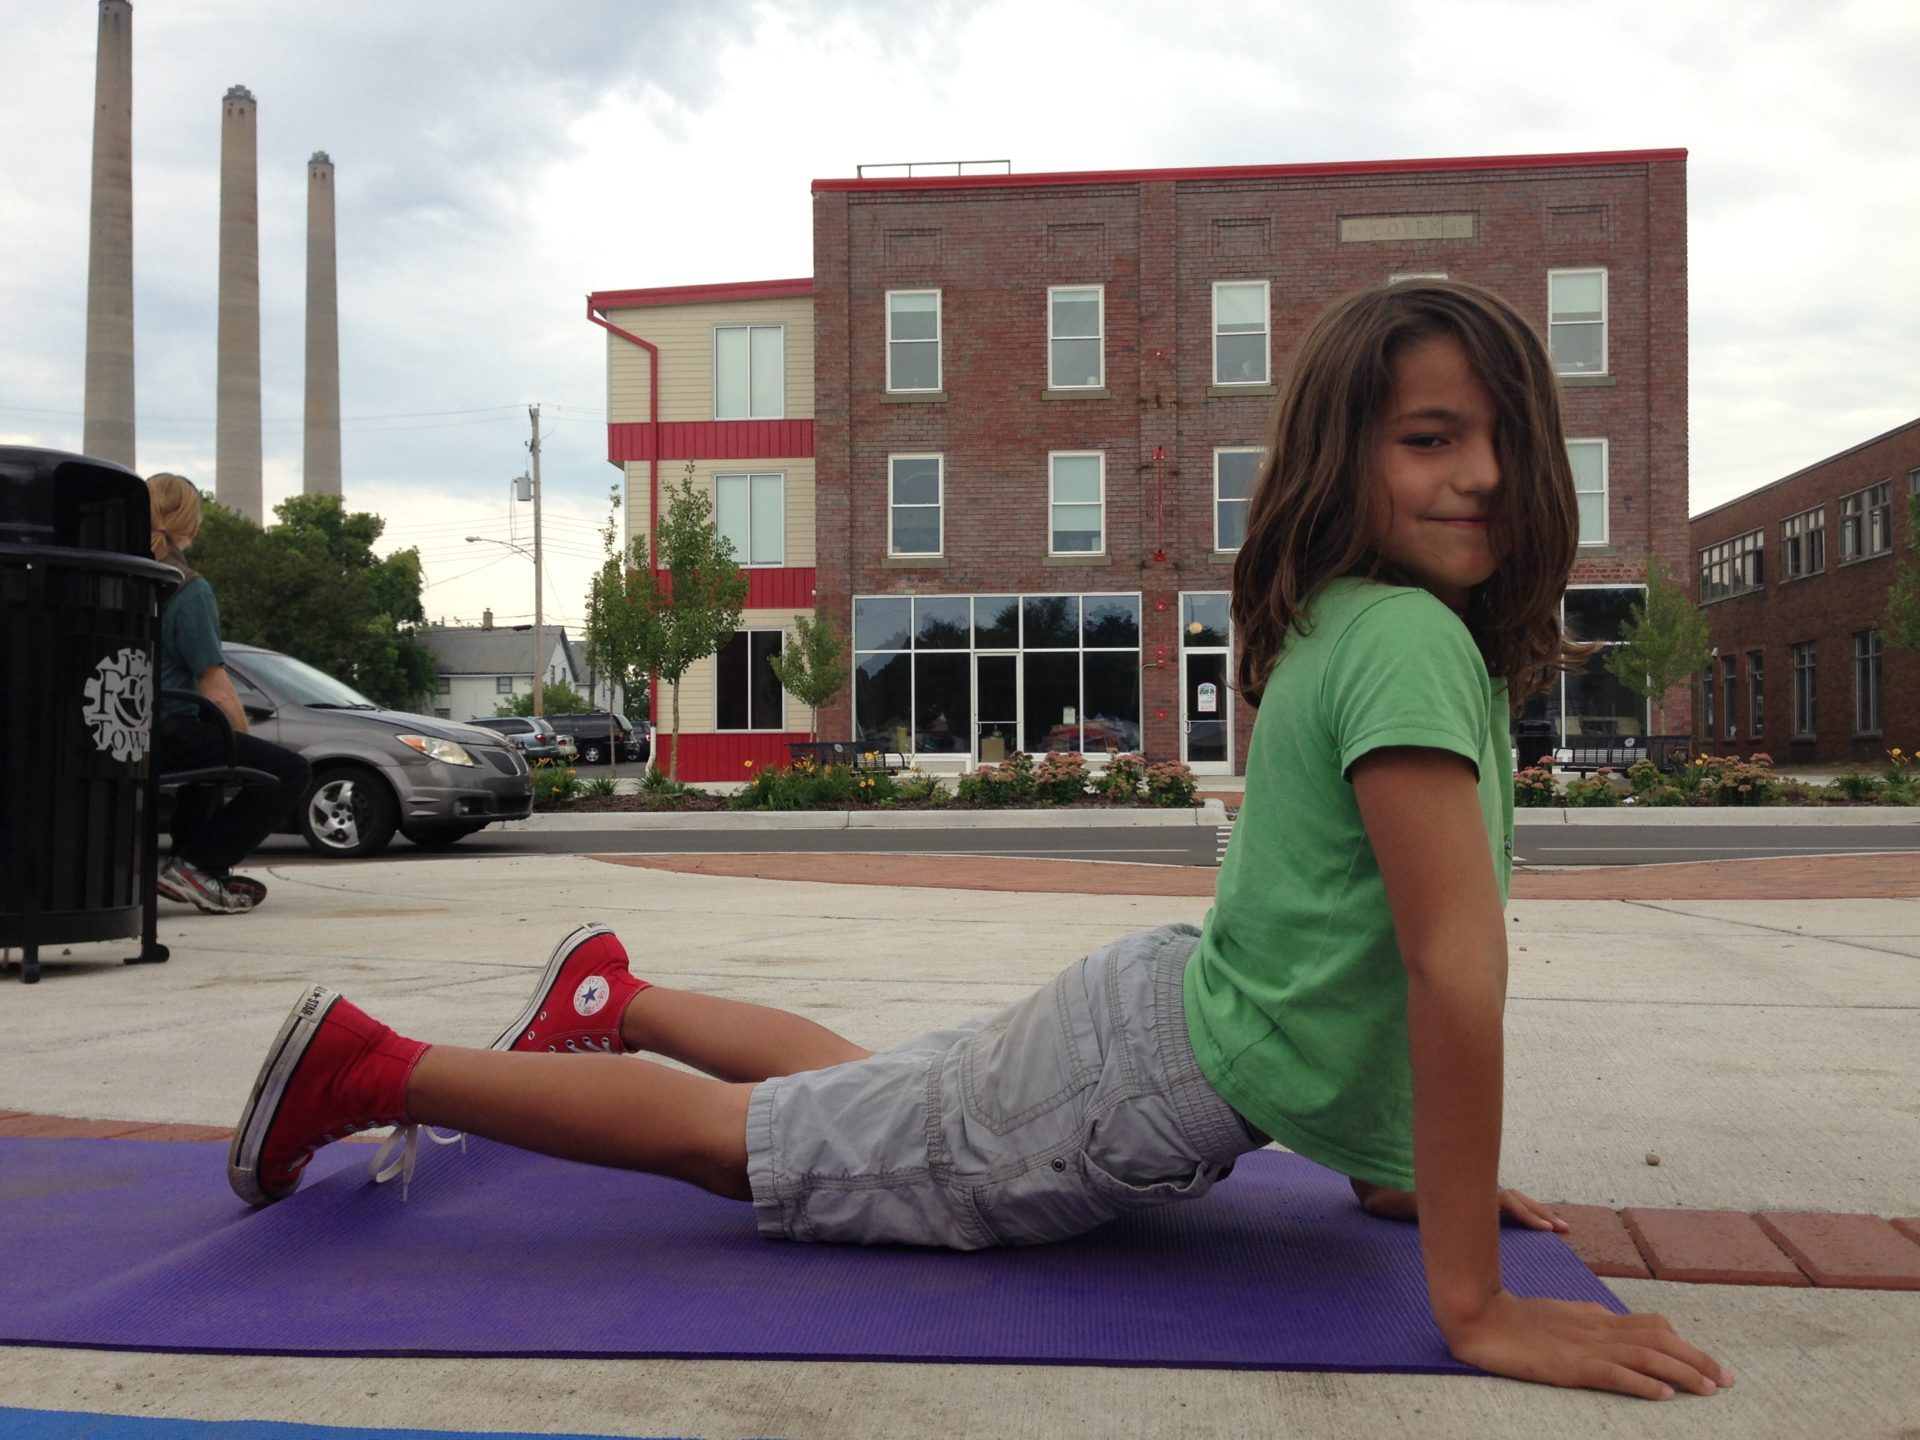 Yoga Photo Art from REO Town Art Attack